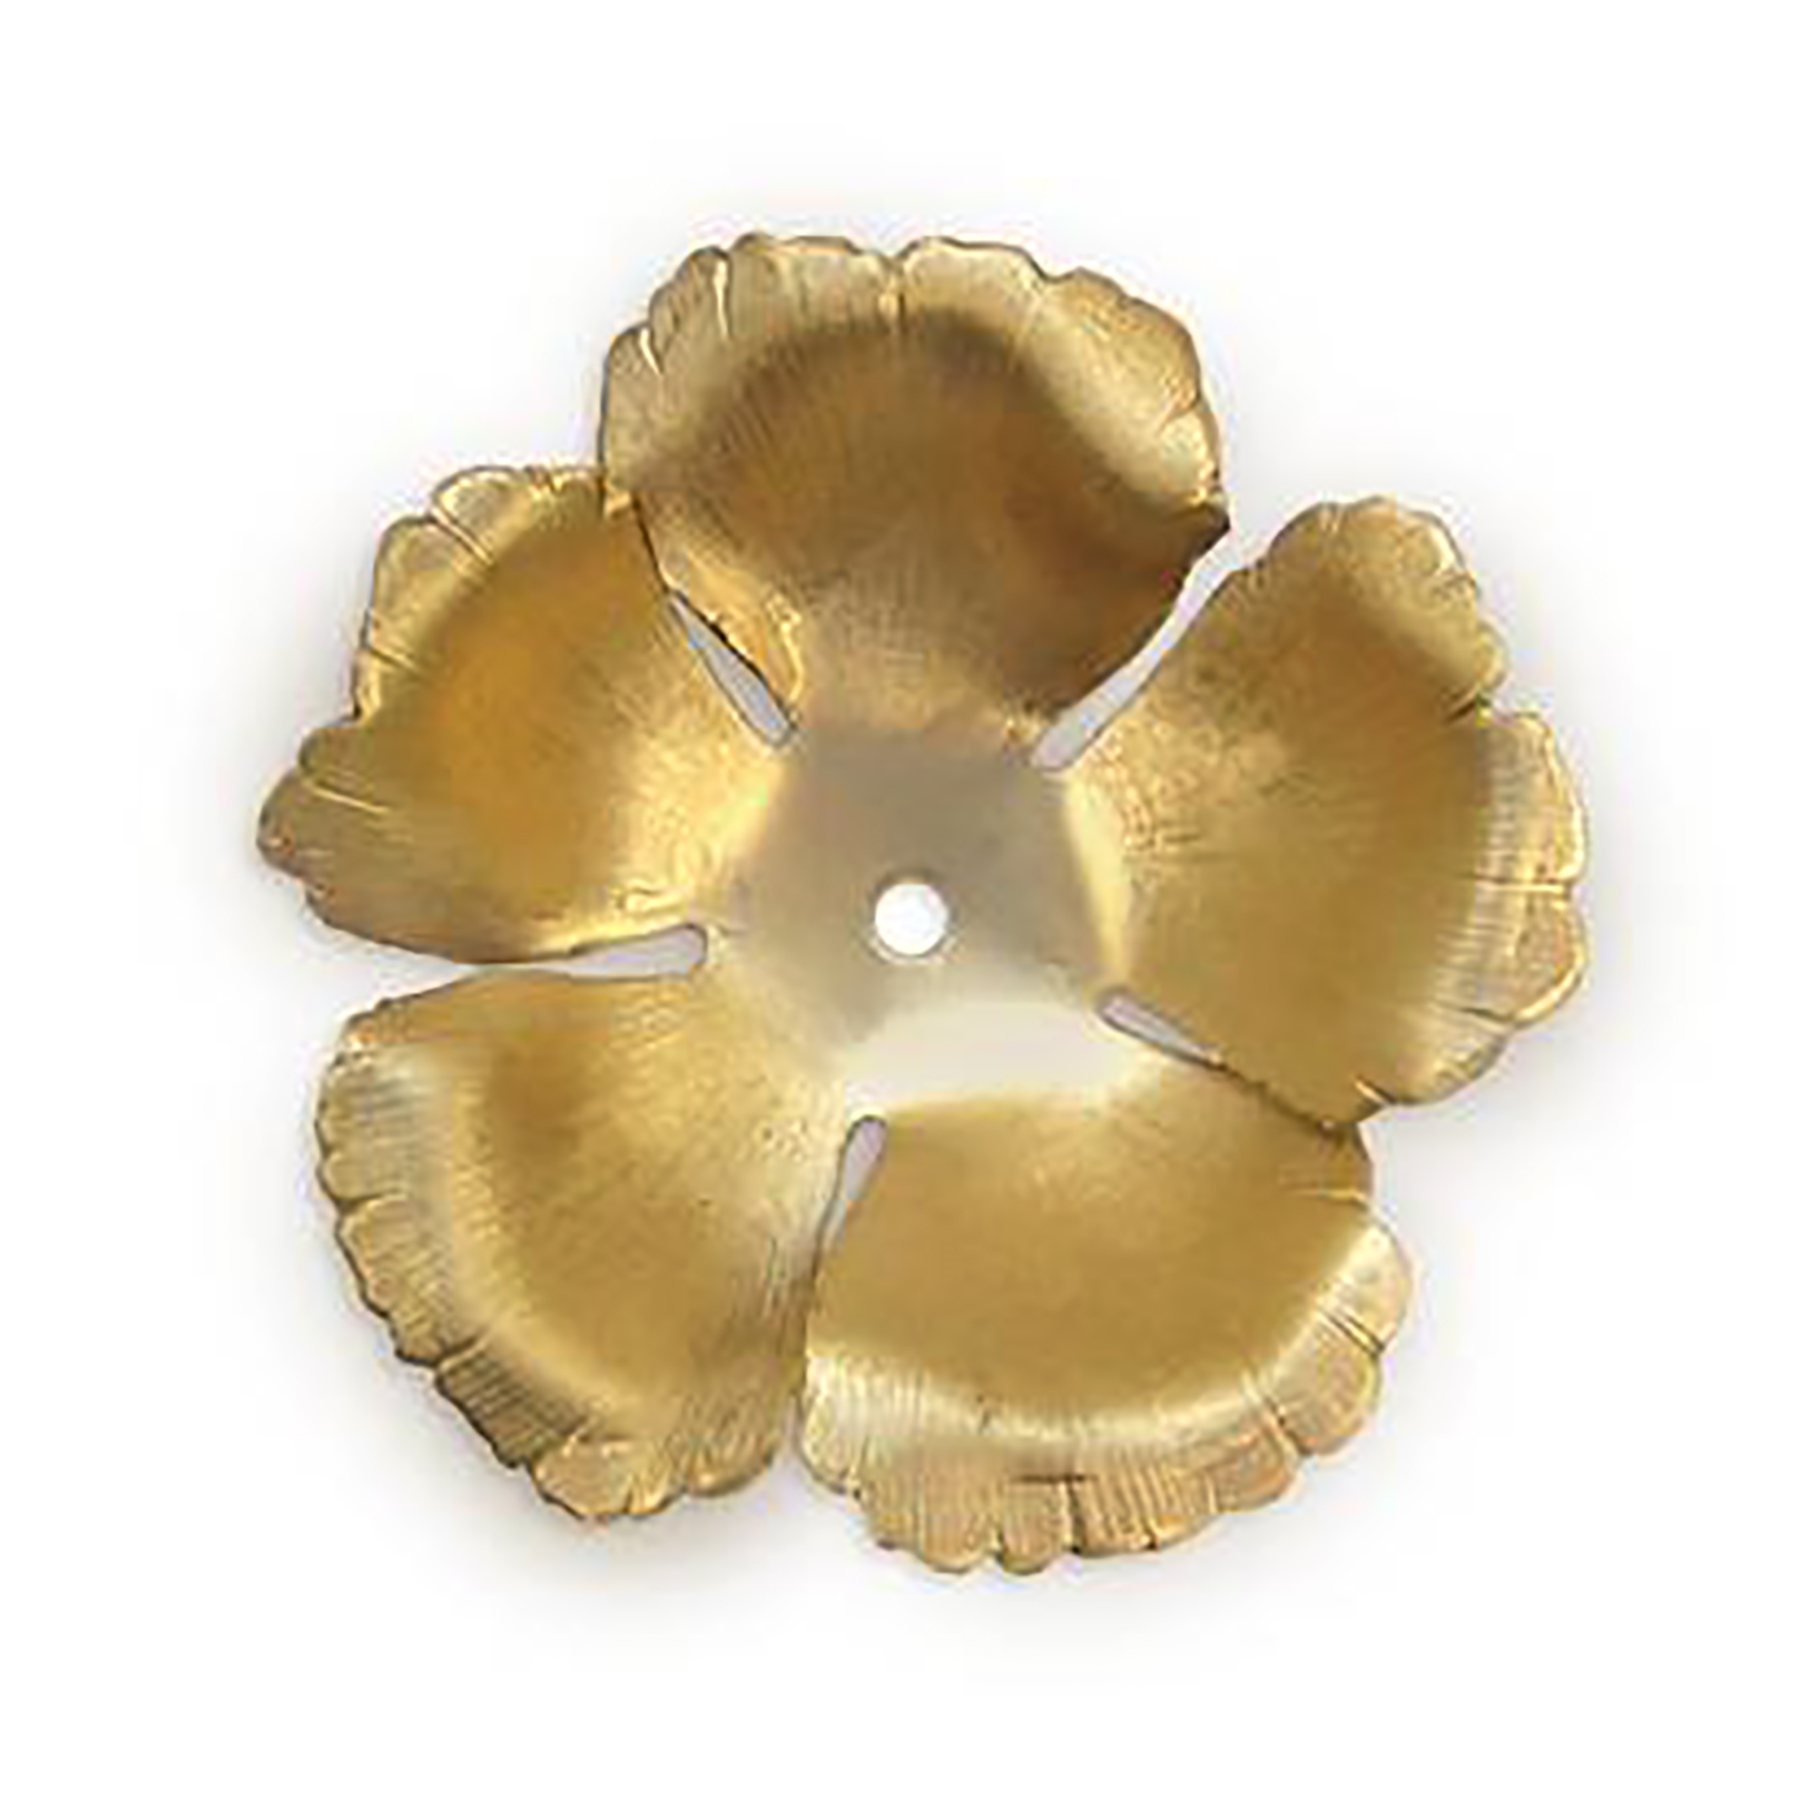 Medium hibiscus flower, raw brass, flower, hibiscus, 44mm, rose, brass stamping, petals, brass, unplated, drilled, stamping, 5 petal, flower petal, is made, nickel free, B'sue Boutiques, jewelry findings, vintage supplies, jewelry supplies, 04143